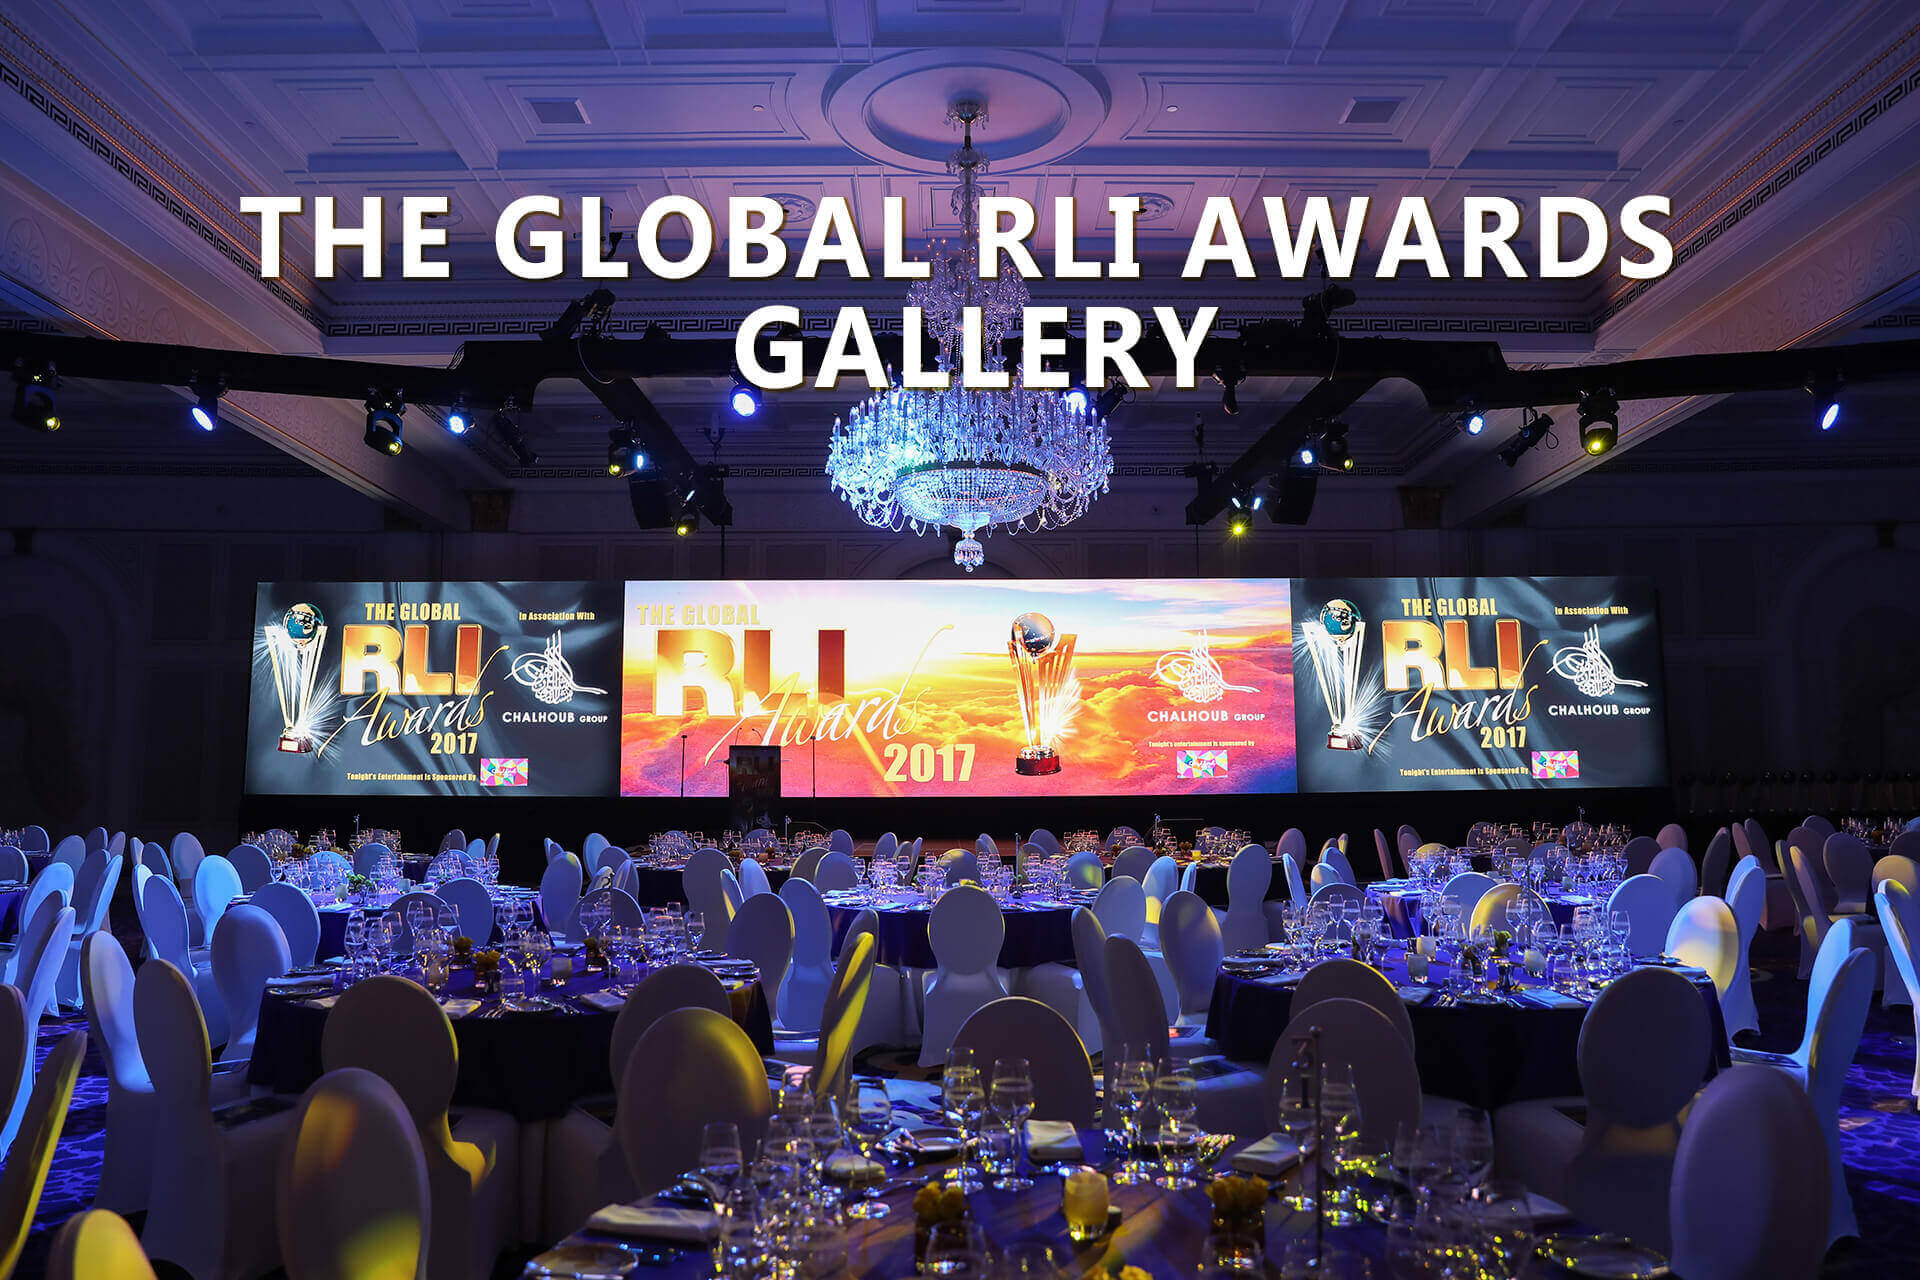 The Global RLI Awards Gallery